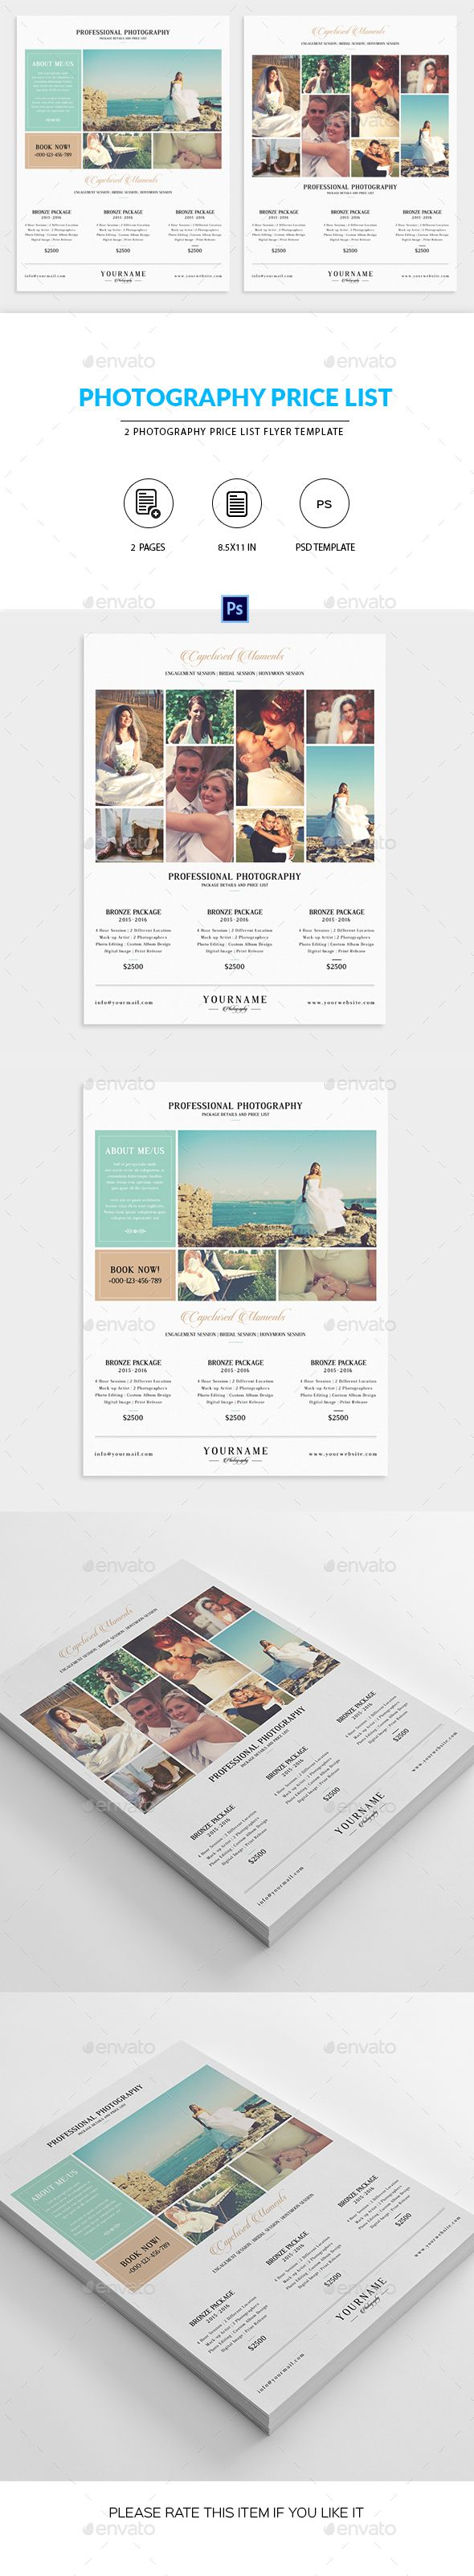 ideas about marketing flyers flyer design minimal photography price list marketing flyer photoshop elements price list